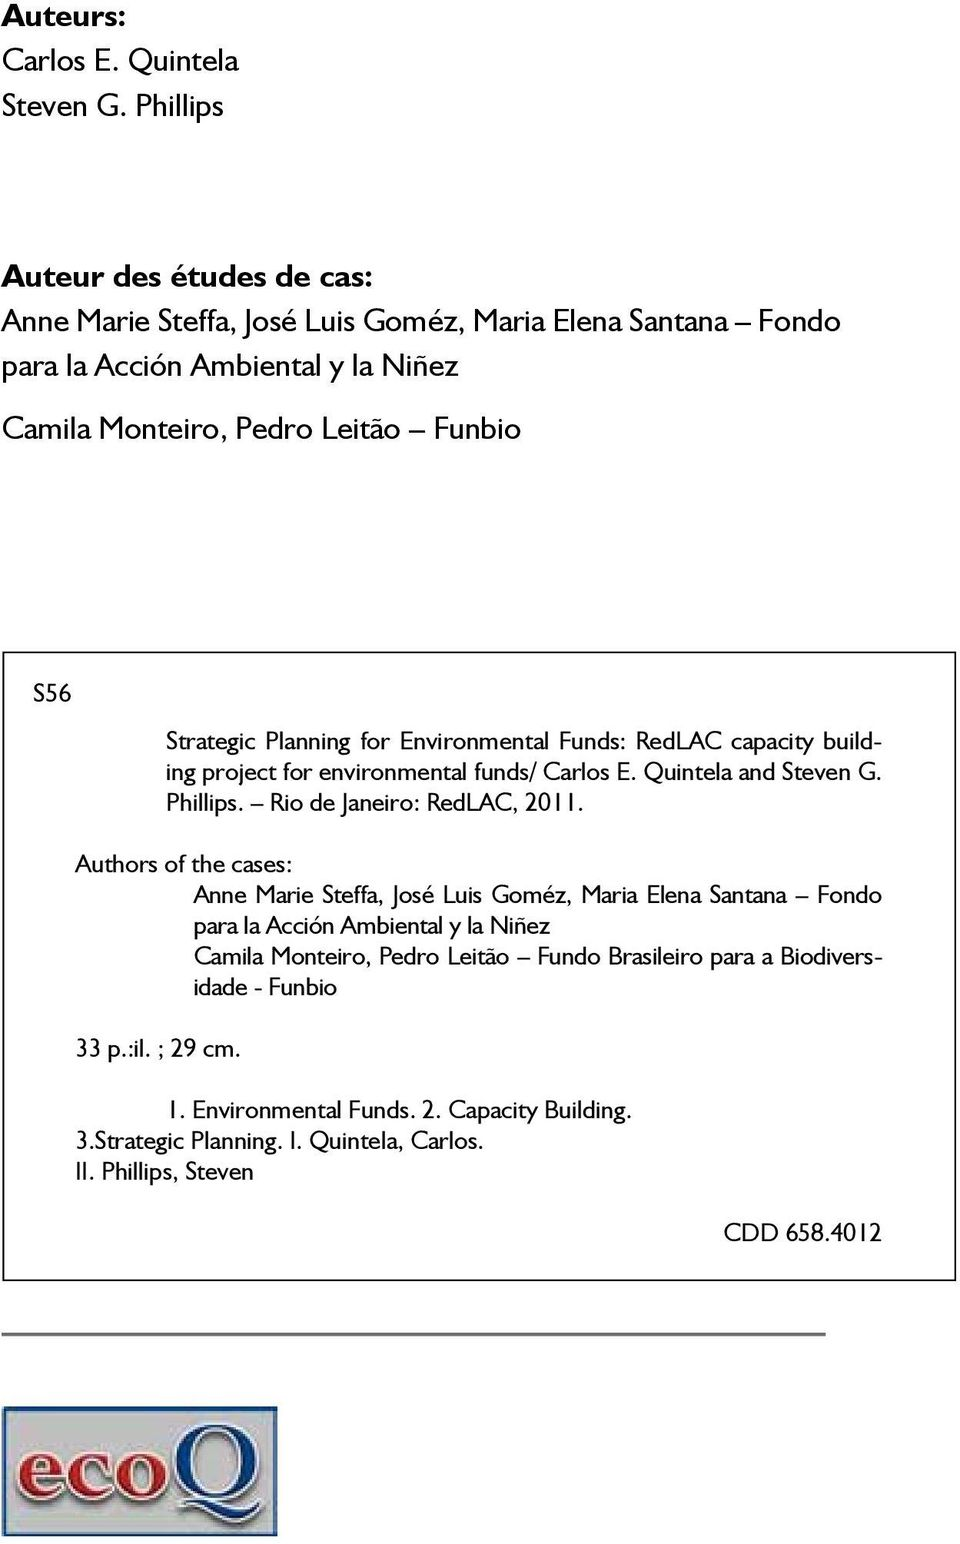 Strategic Planning for Environmental Funds: RedLAC capacity building project for environmental funds/ Carlos E. Quintela and Steven G. Phillips. Rio de Janeiro: RedLAC, 2011.